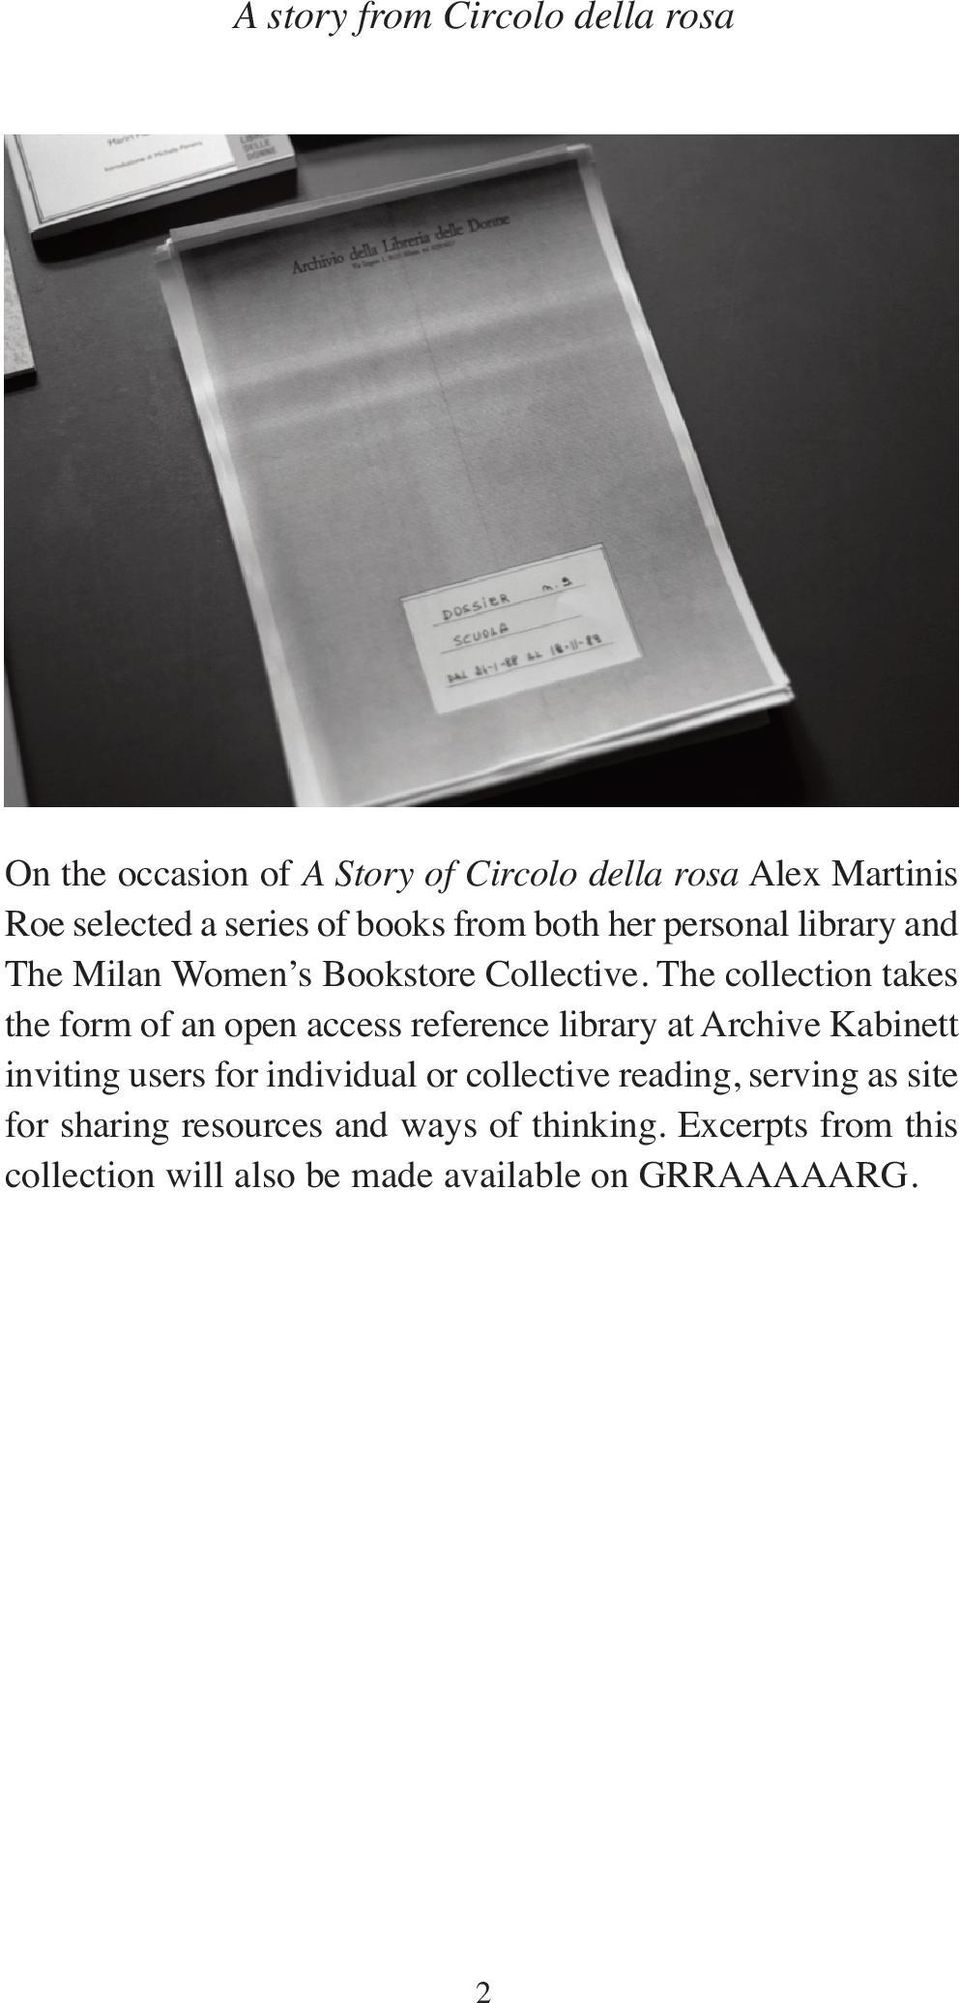 The collection takes the form of an open access reference library at Archive Kabinett inviting users for individual or